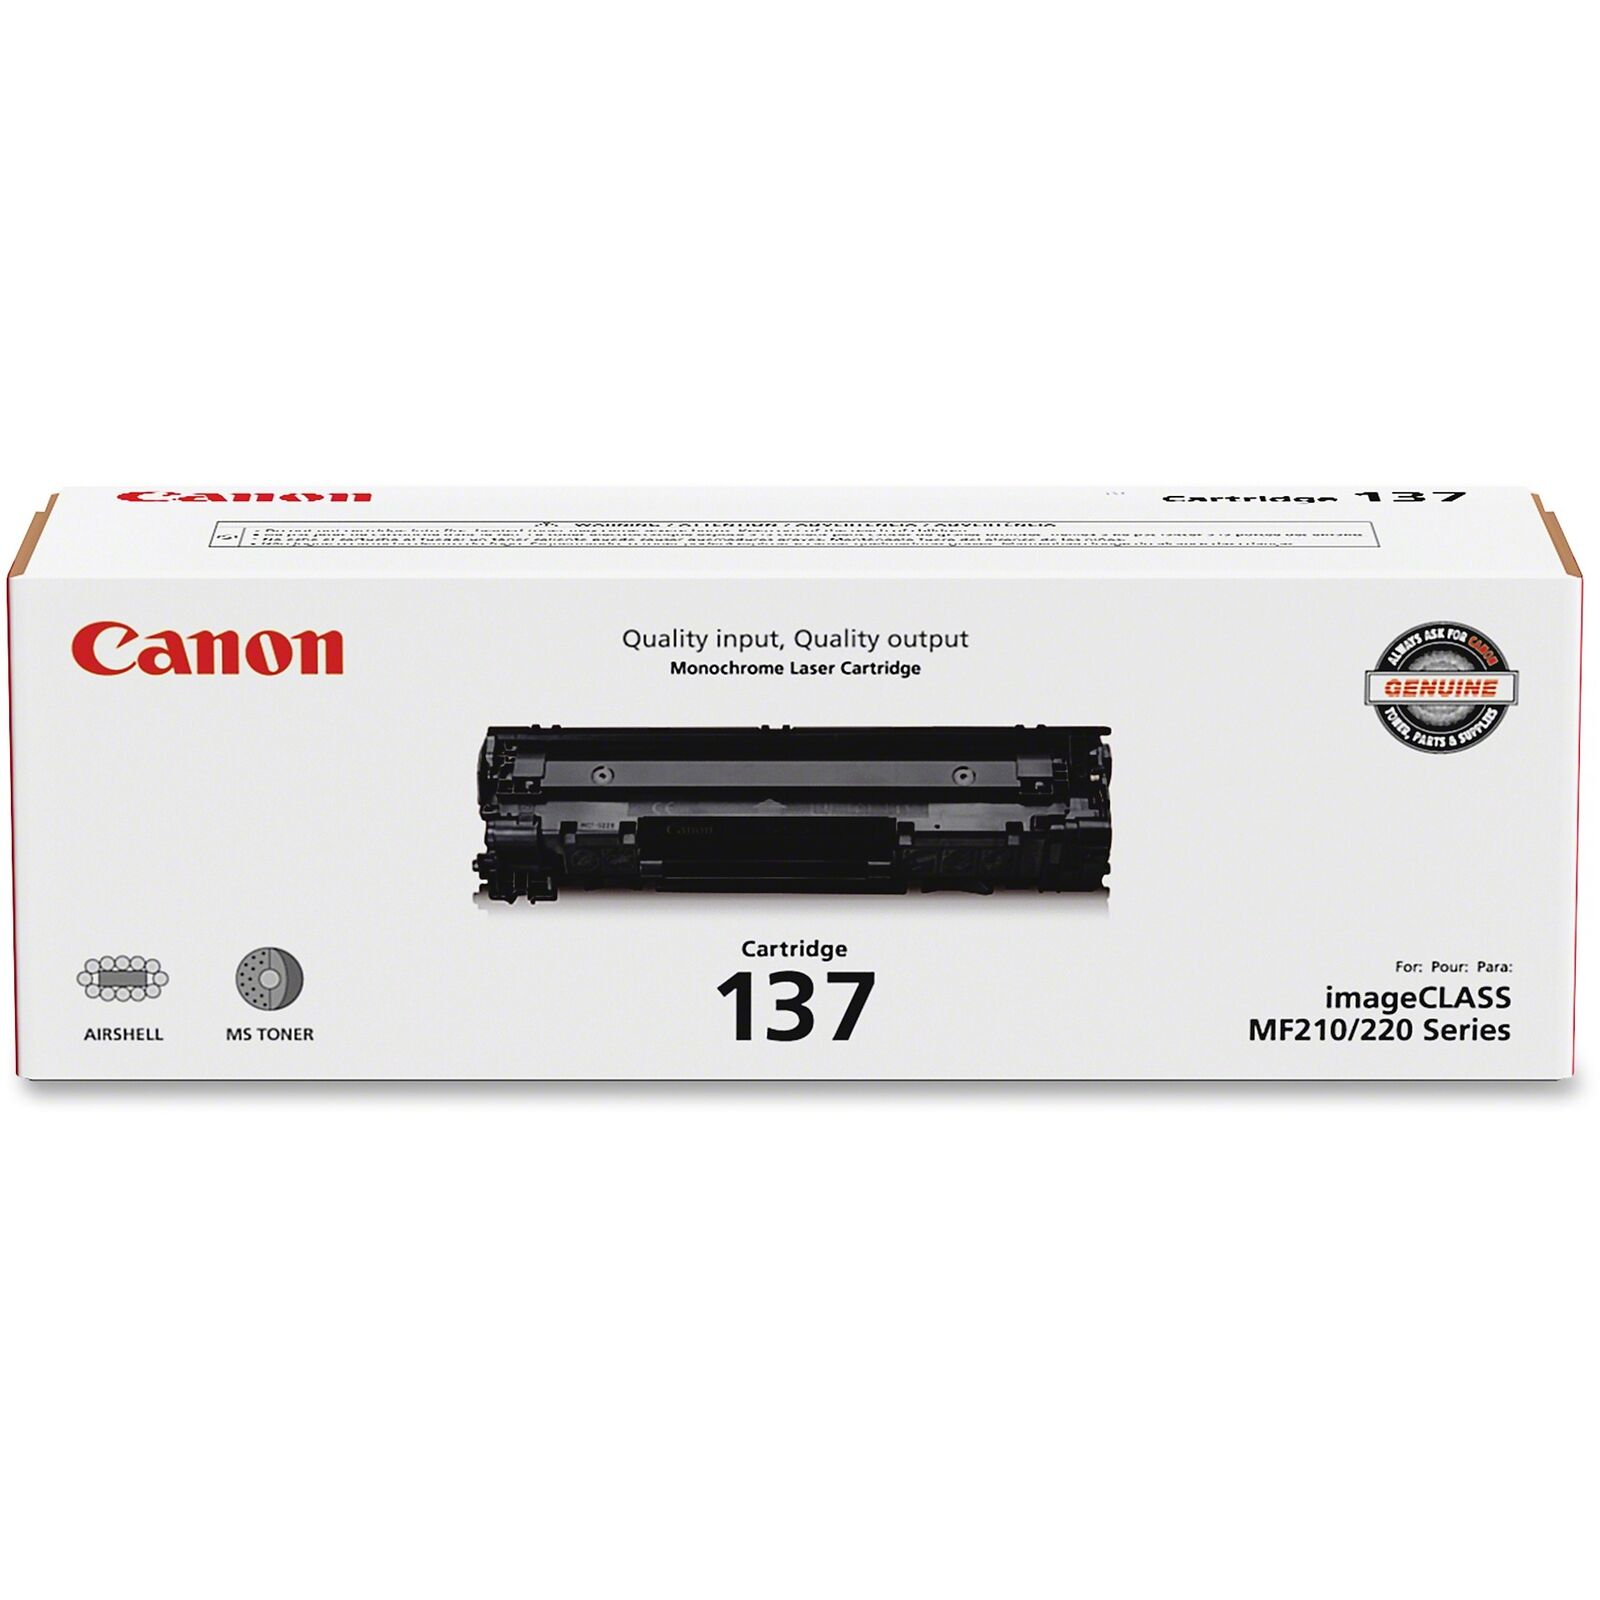 toner cartridge compatible with 137 black